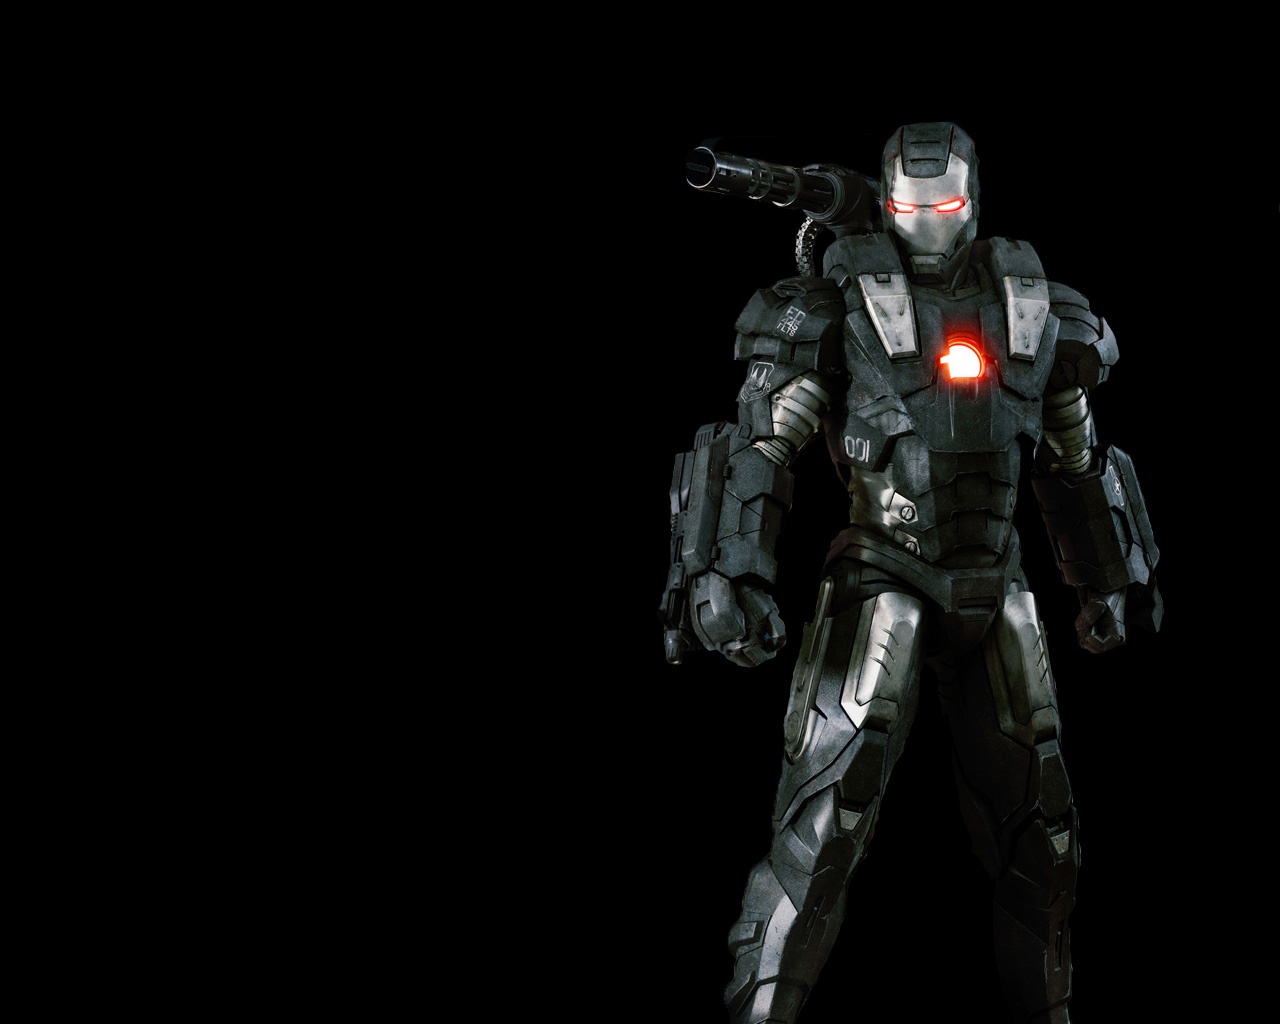 wallpaper iron man hd,action figure,toy,fictional character,armour,3d modeling